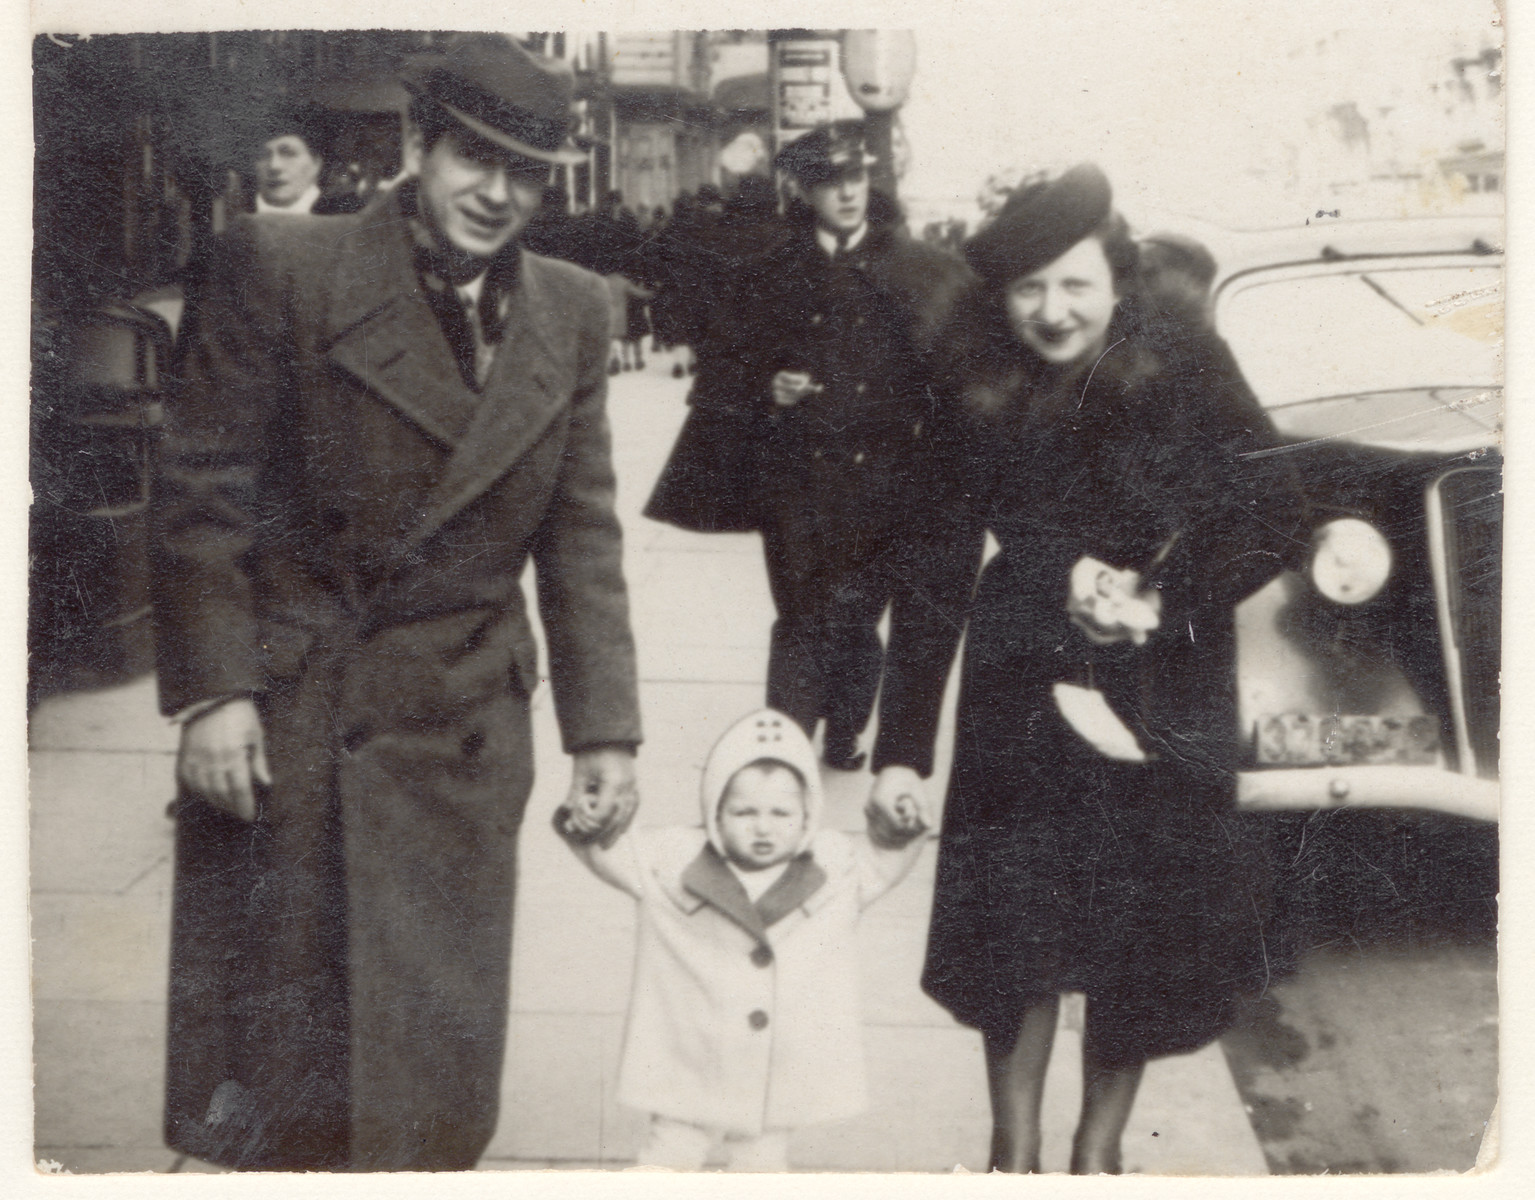 A Jewish family walks down the street hand in hand.  Pictured are Jacques and Fajga Aizenberg with their daughter, Josiane.